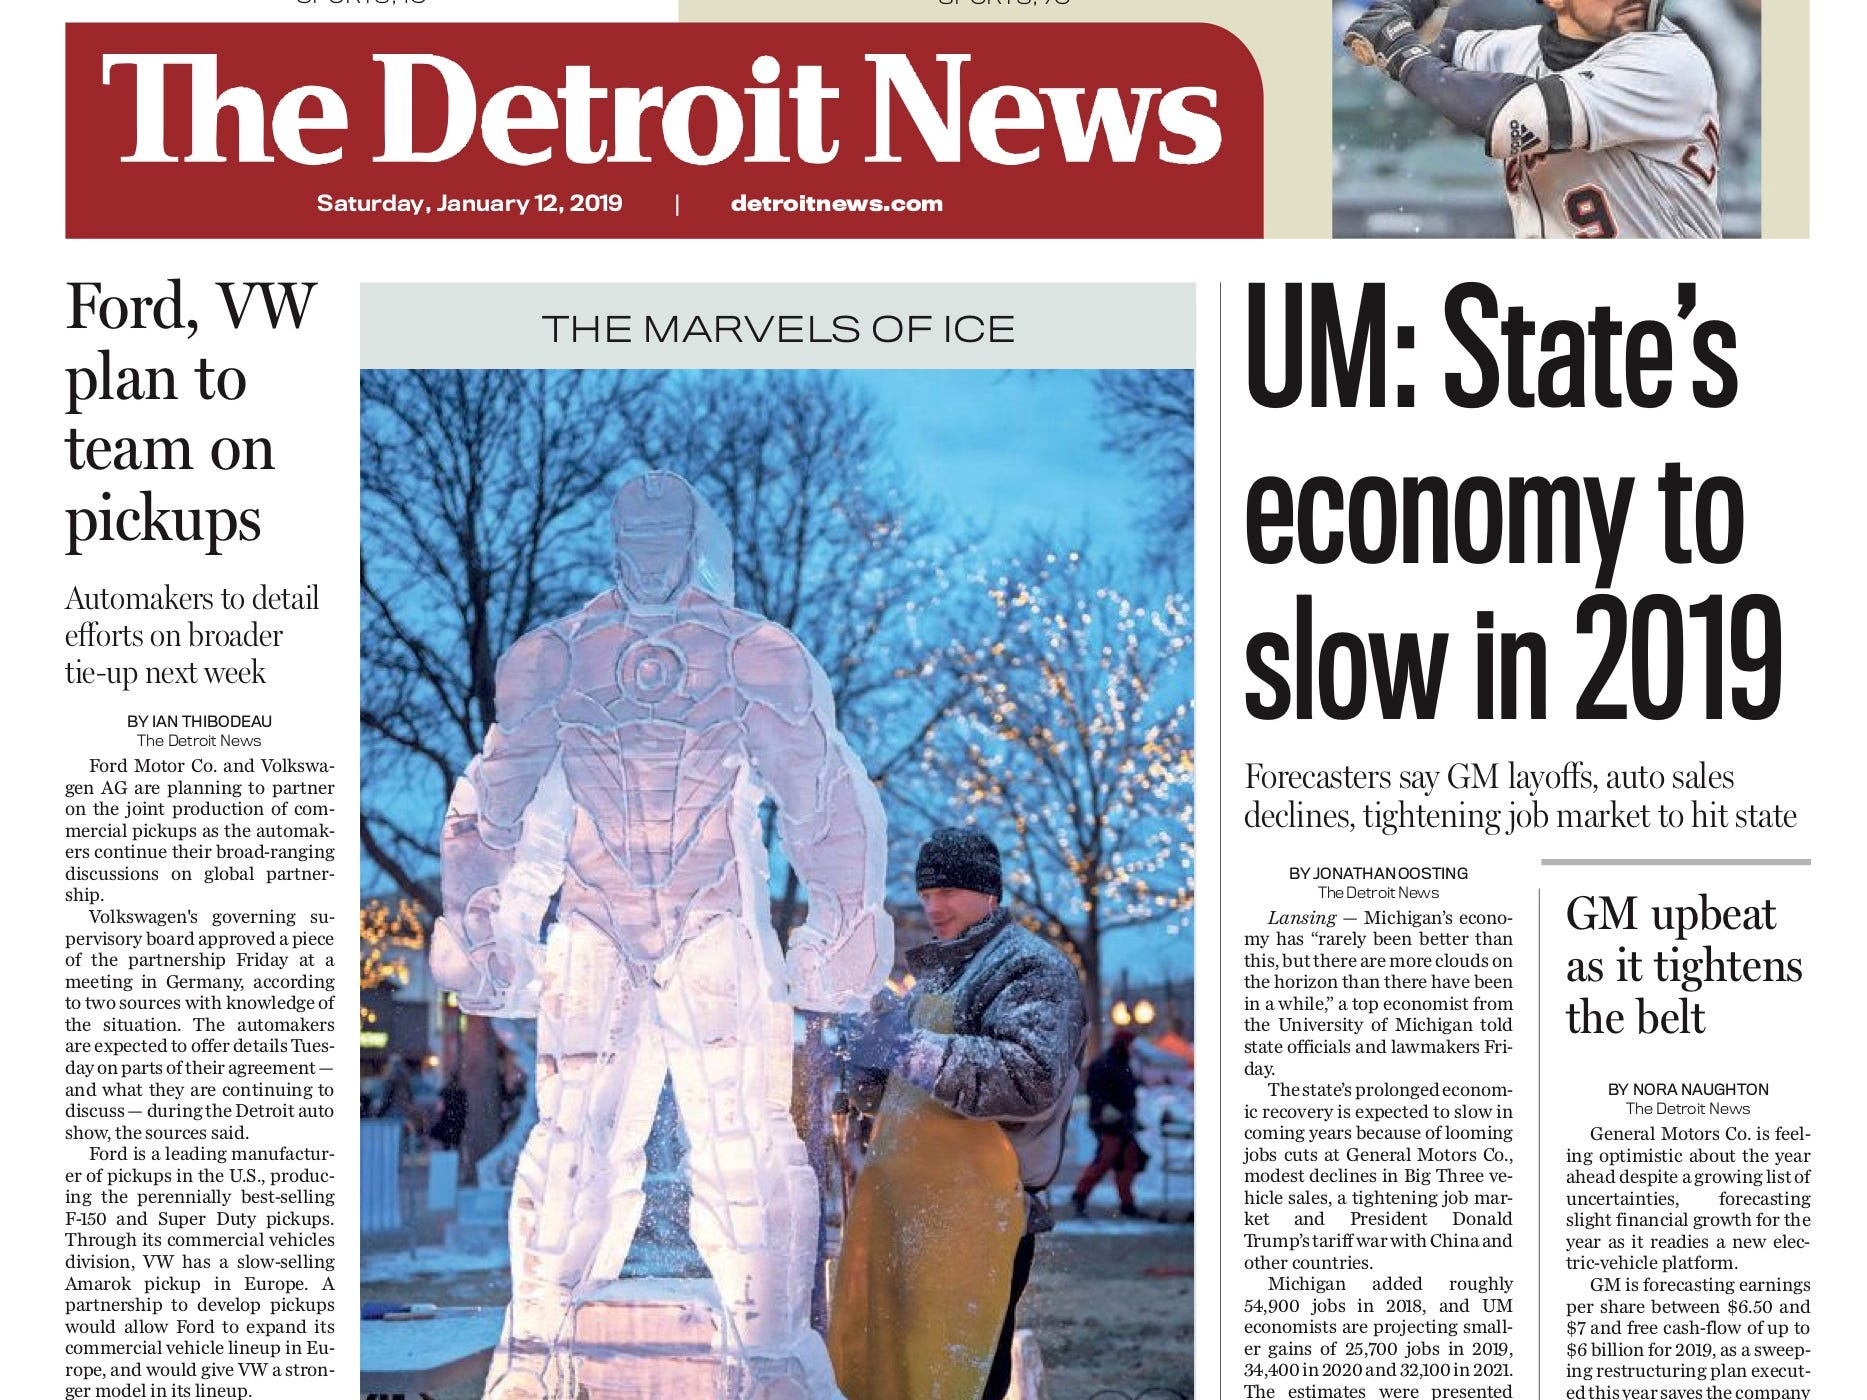 The front page of the Detroit News on January 12, 2019.